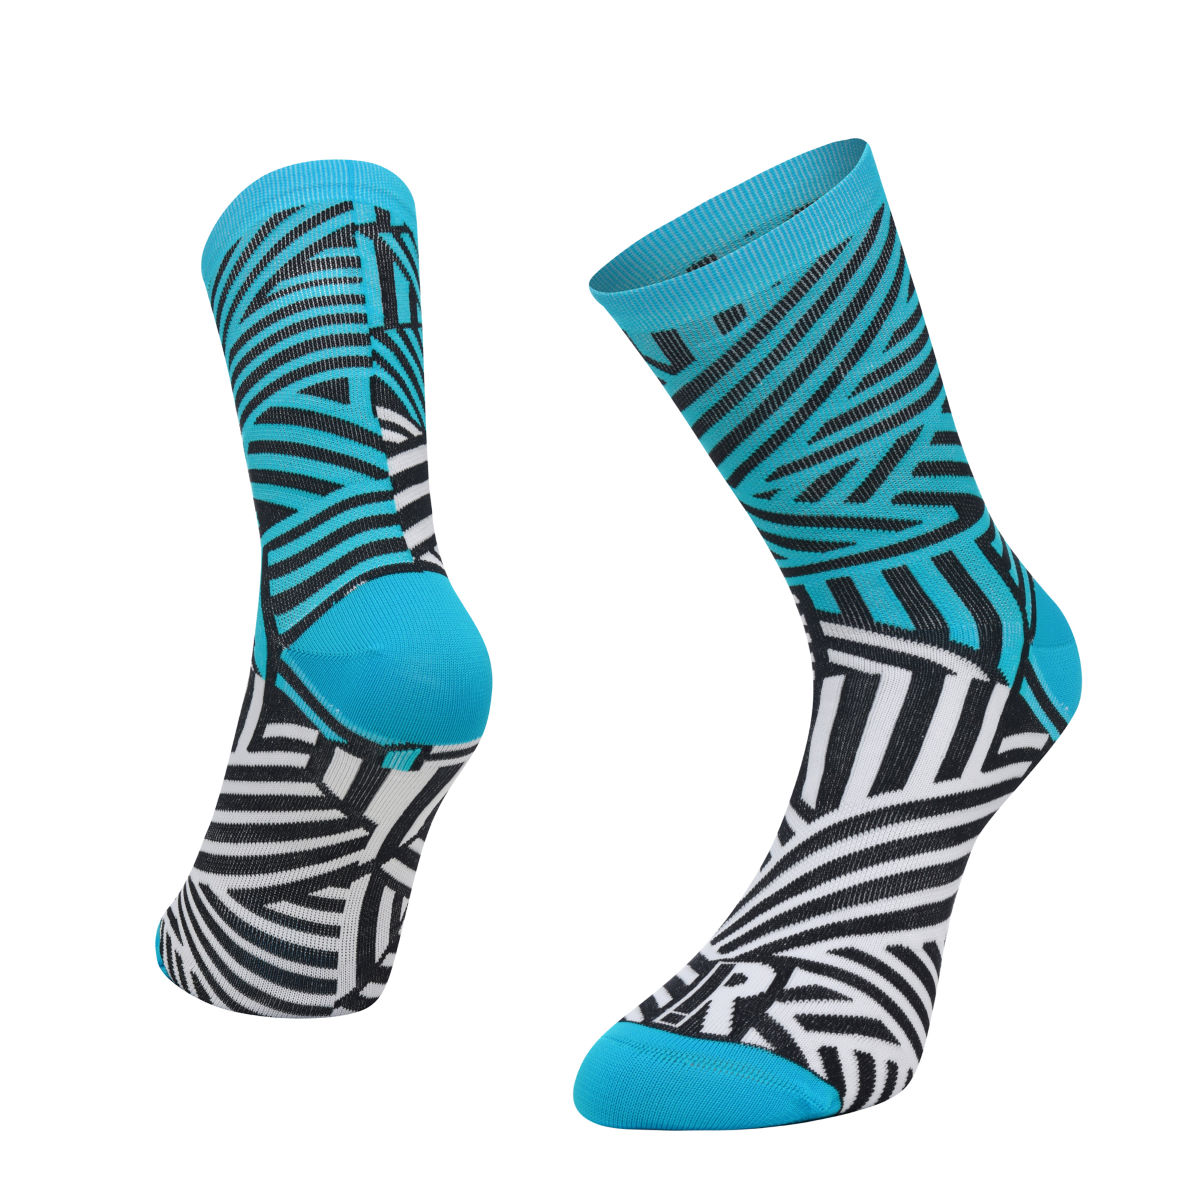 Ratio Dash 16 cm Sock (Blue/White) - Calcetines